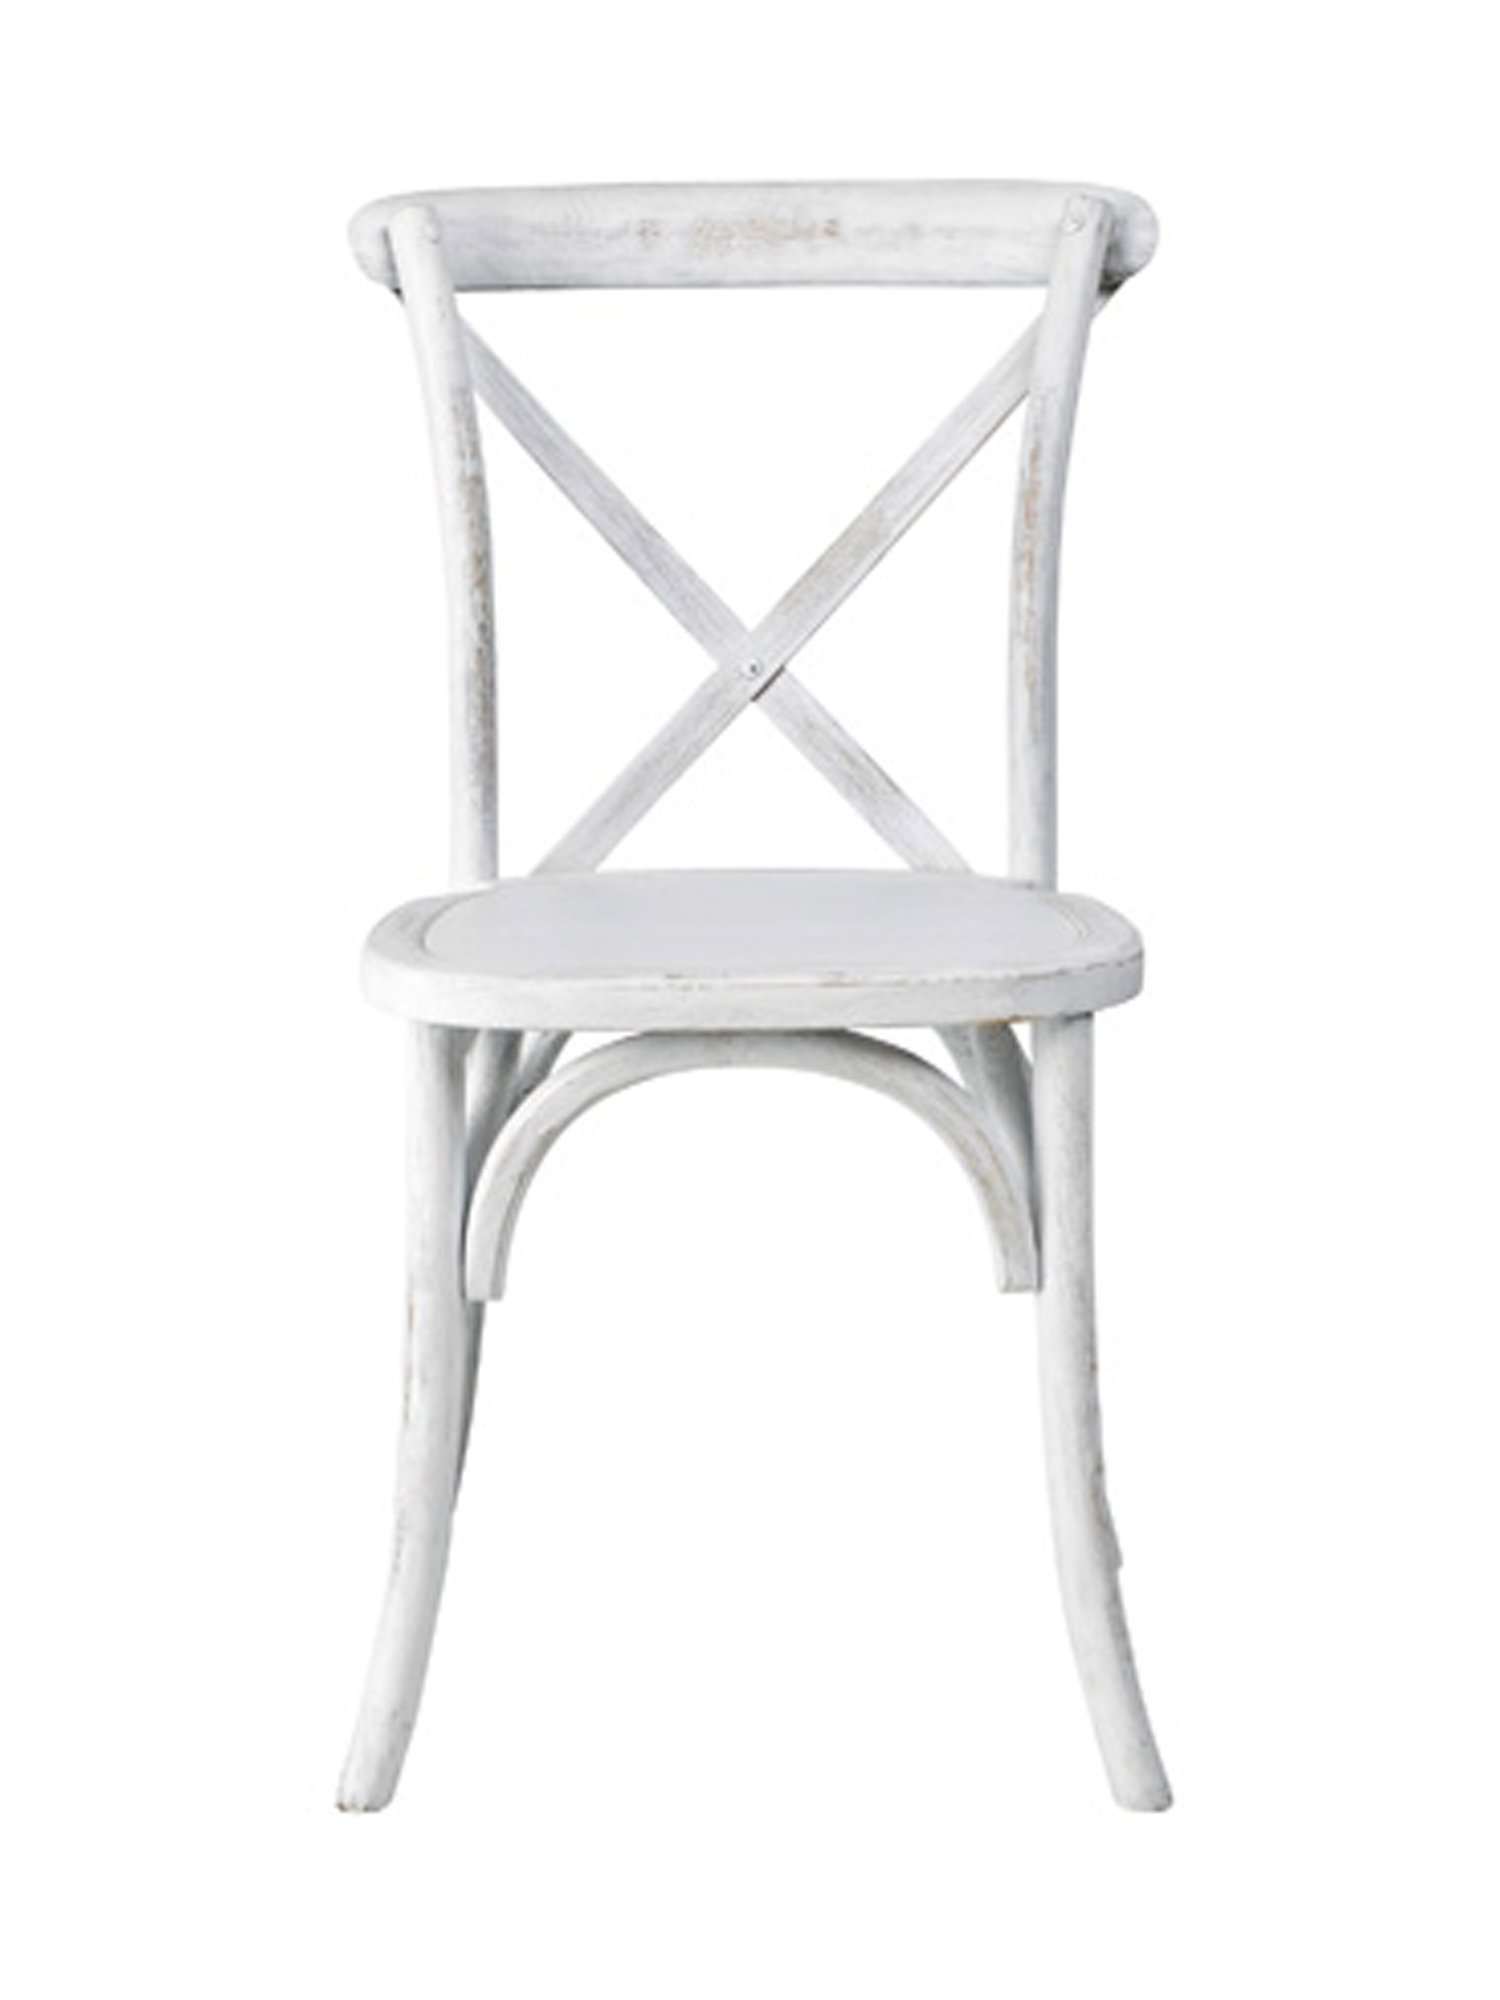 Commercial Seating Products W-701-X02-Wwash Sonoma Cross Back X02 Rustic Wood Stakable Dining Chair, White Wash